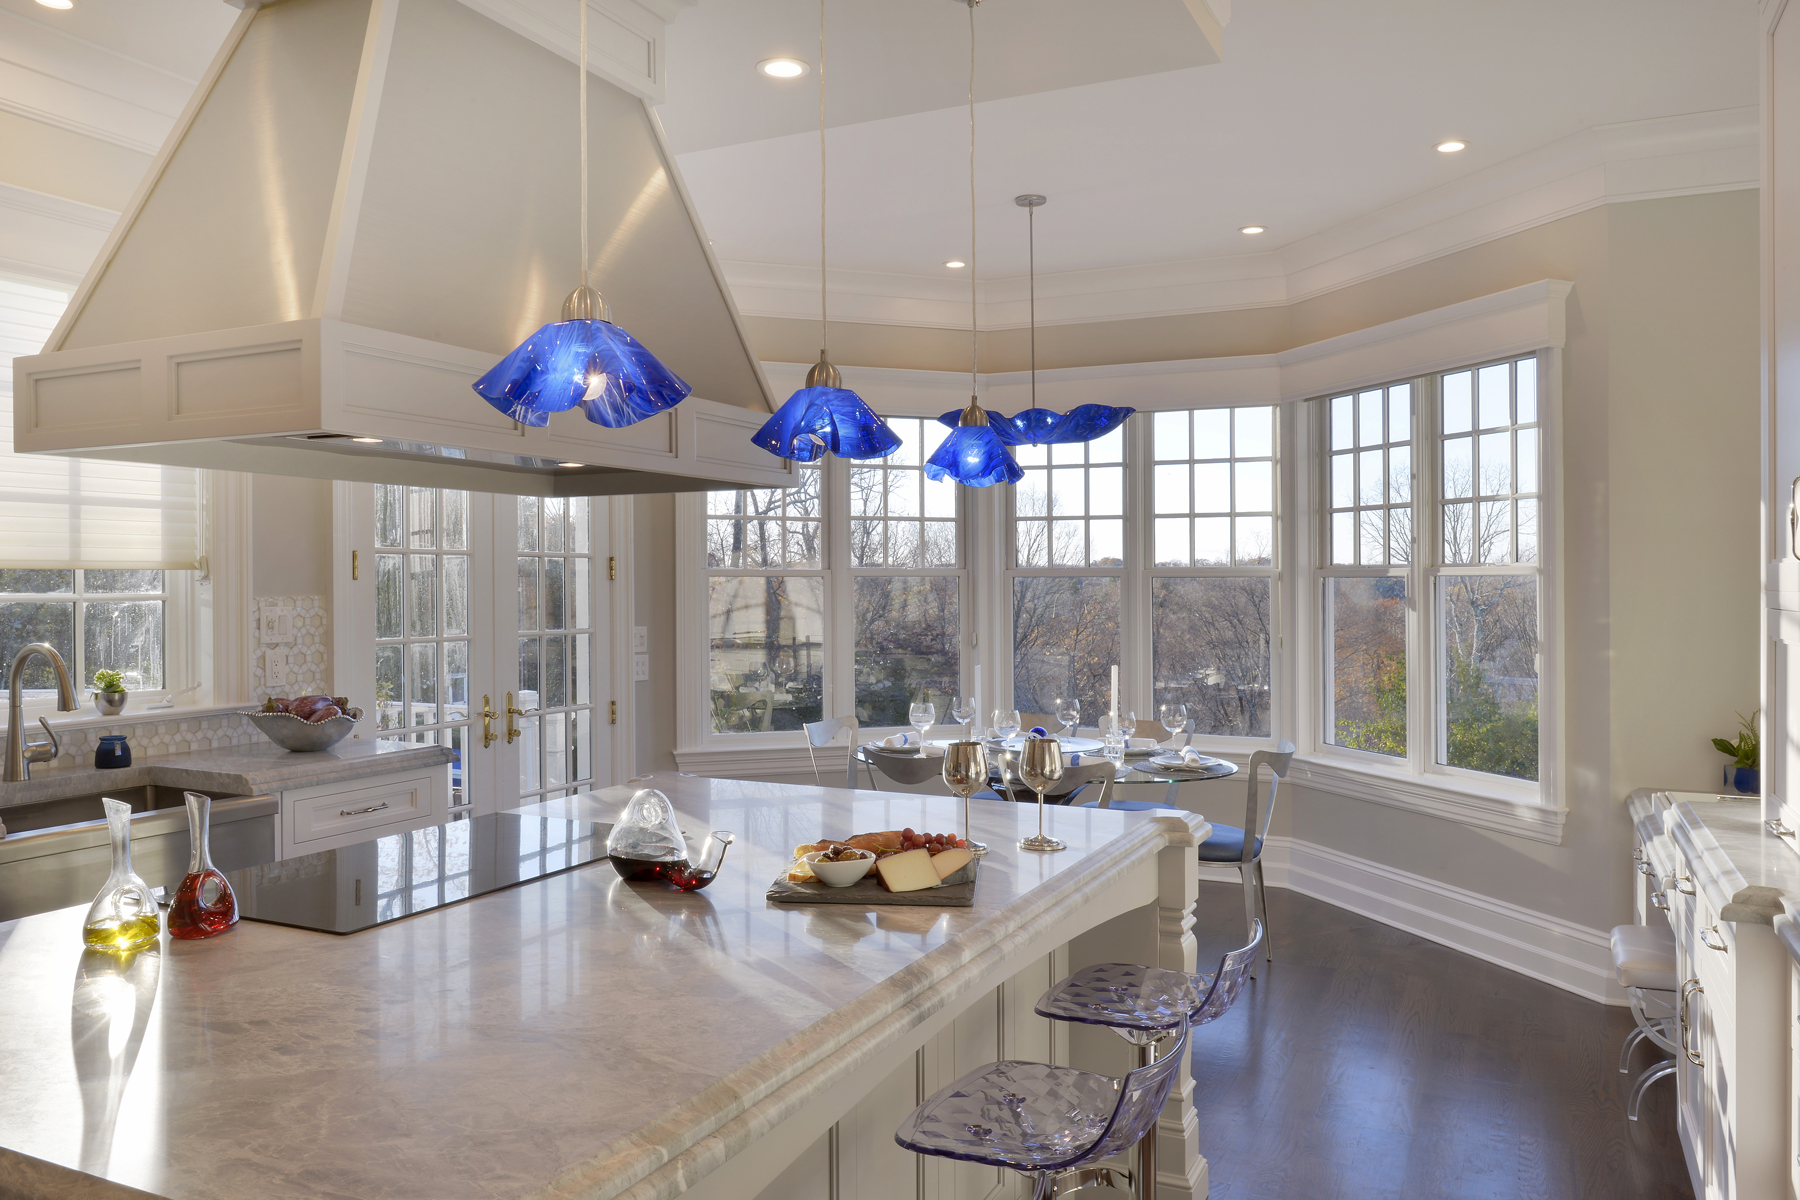 Bright U-shaped kitchen with white painted fully custom Bilotta cabinets, light marble countertops, island hood in wood and stainless steel, and blue glass pendant lights. Designed by Fabrice Garson of Bilotta Kitchens.